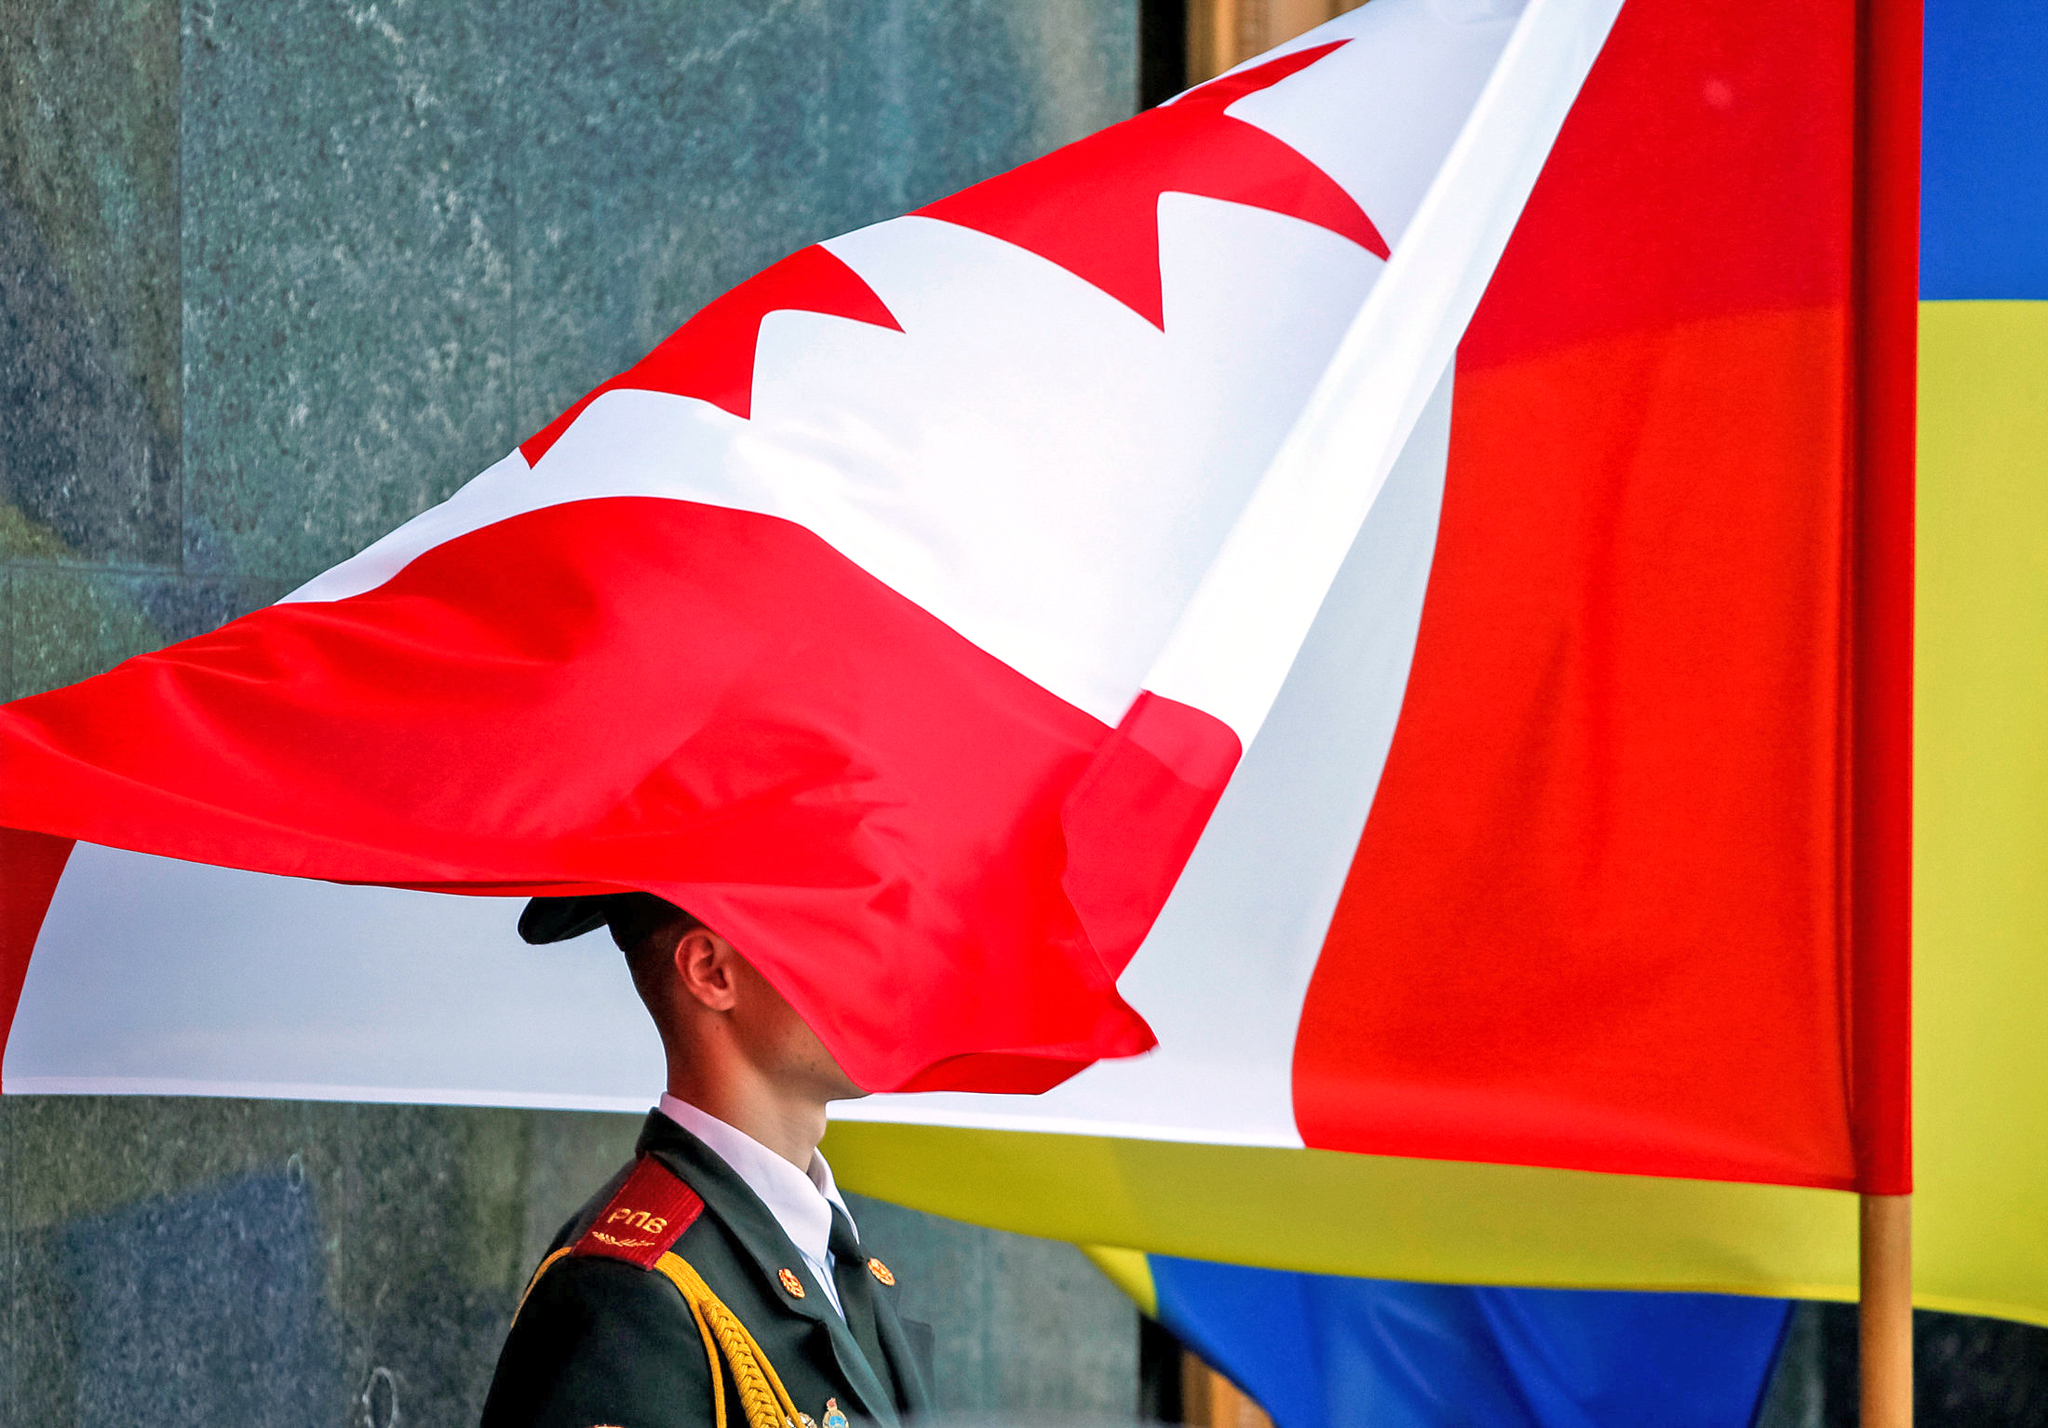 Canadian national flag covers a soldier from Ukraine's honour guards during a welcoming ceremony for Canada's Prime Minister Justin Trudeau in Kiev, Ukraine, July 11, 2016